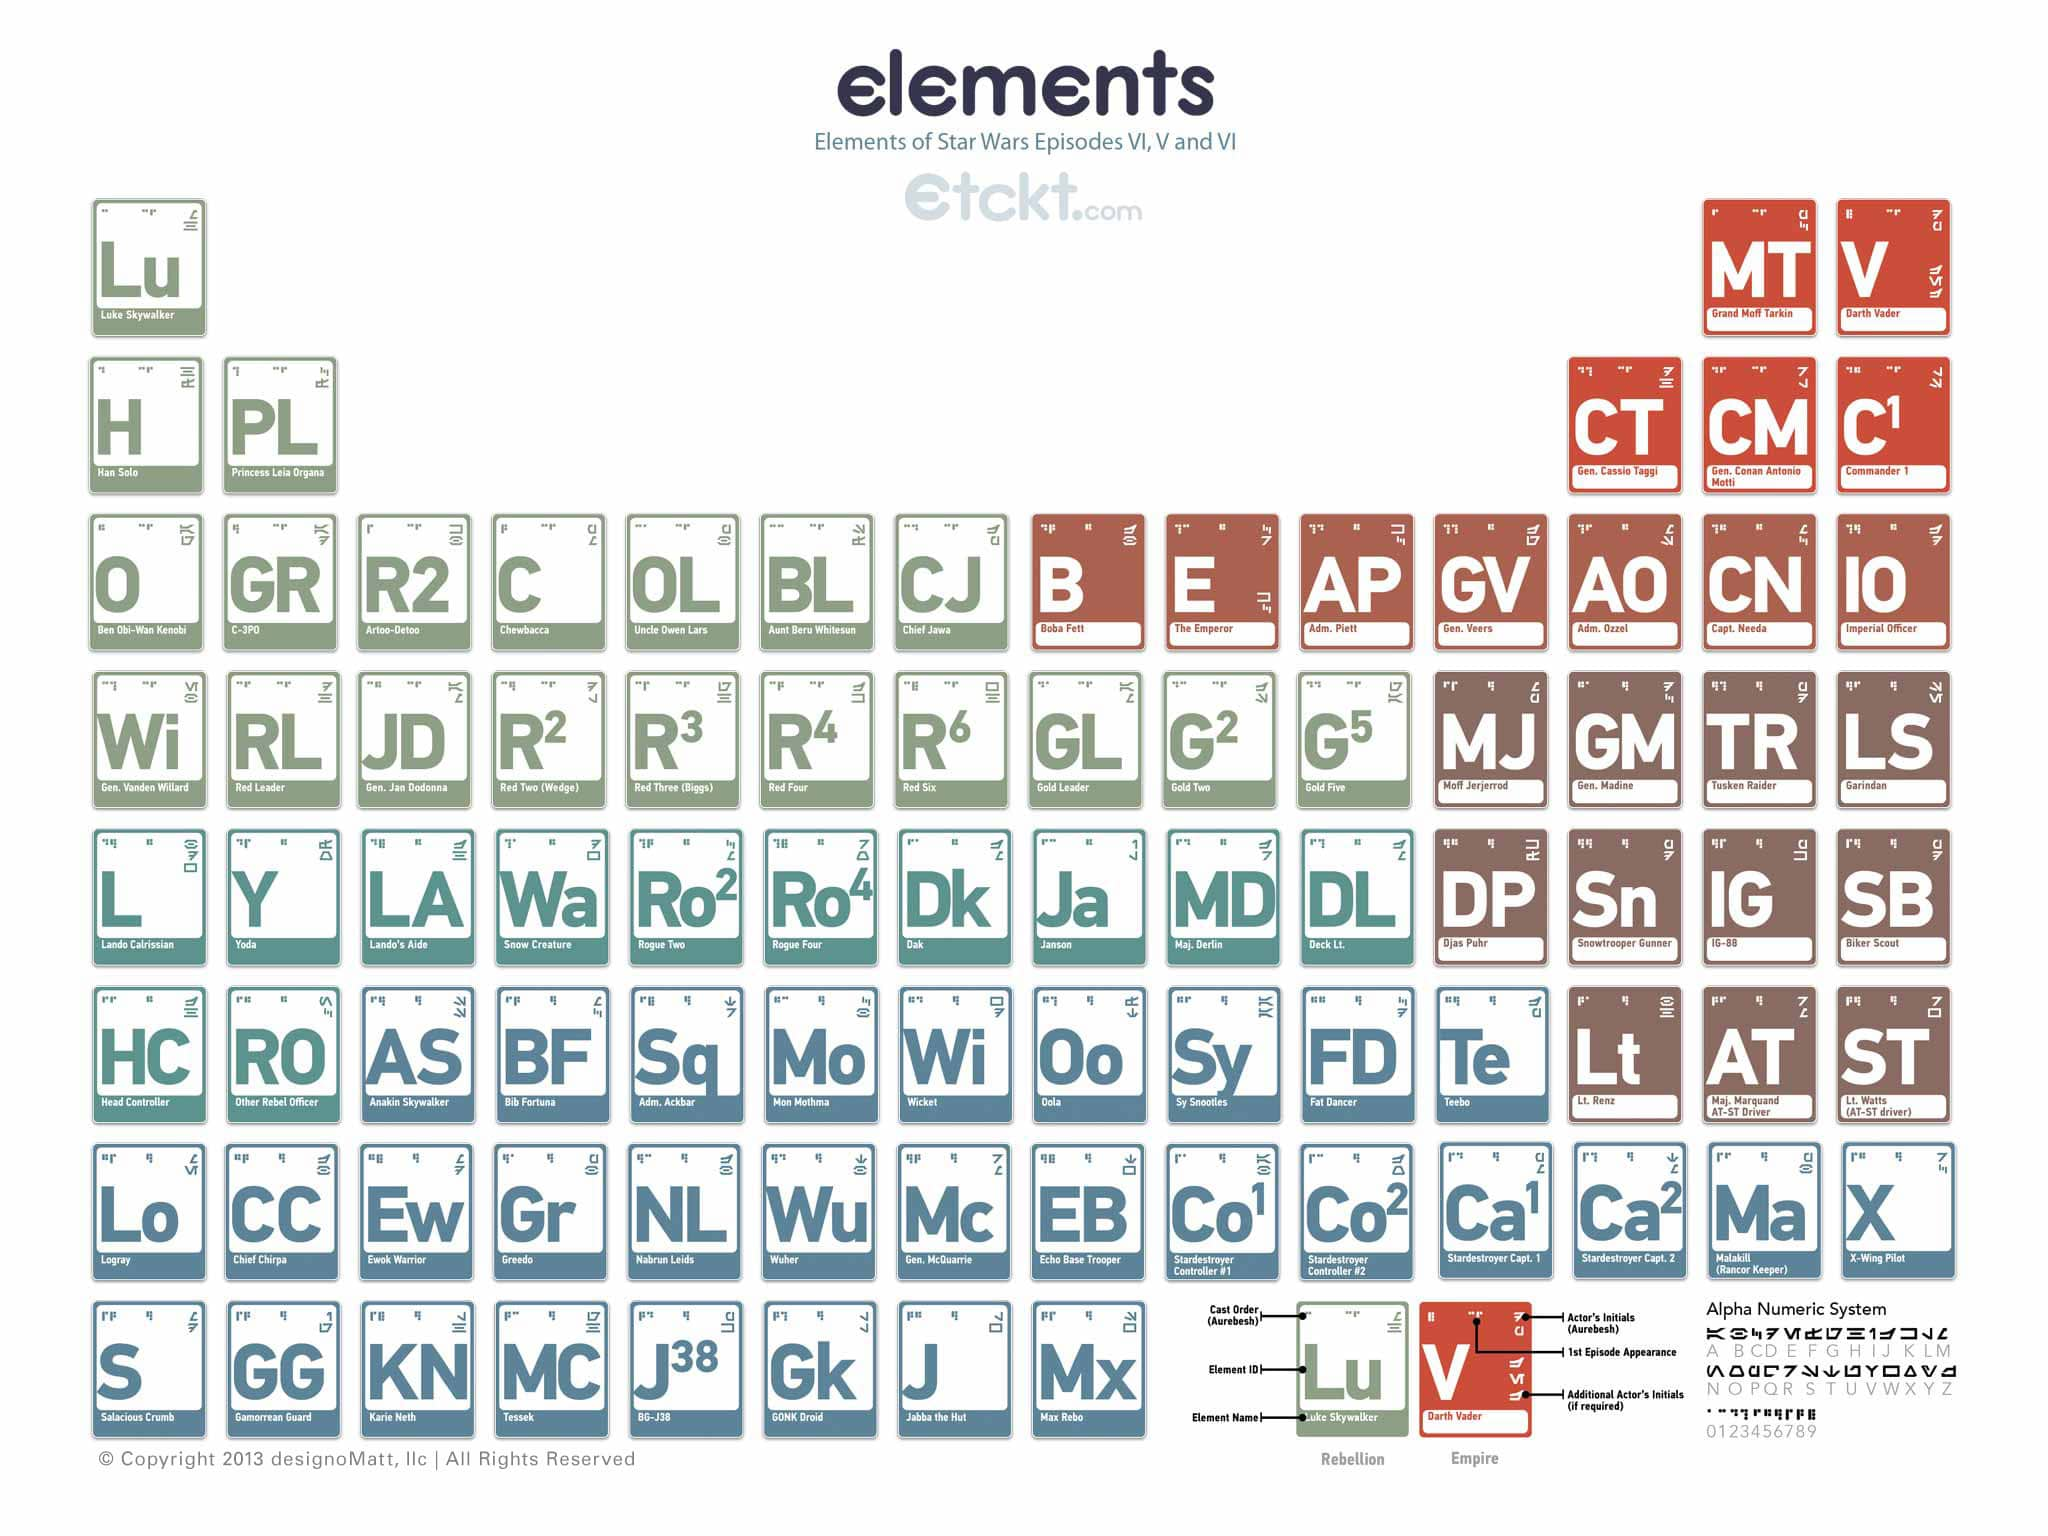 Complex Periodic Table Of Elements From Star Wars Episodes IV, V, VI